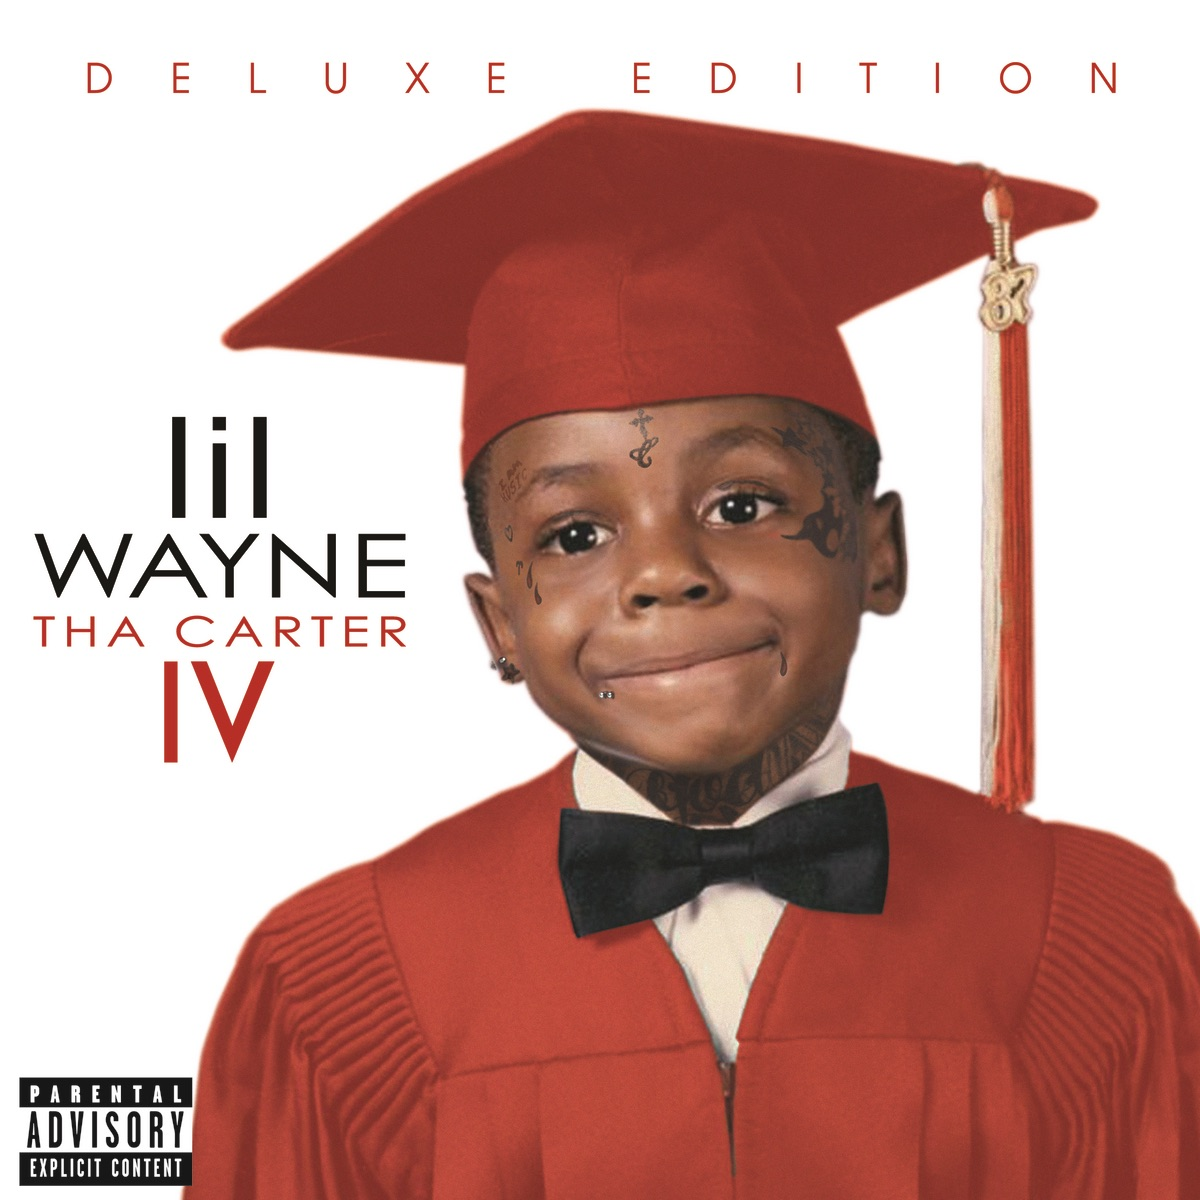 Tha Carter IV Deluxe Edition Lil Wayne CD cover